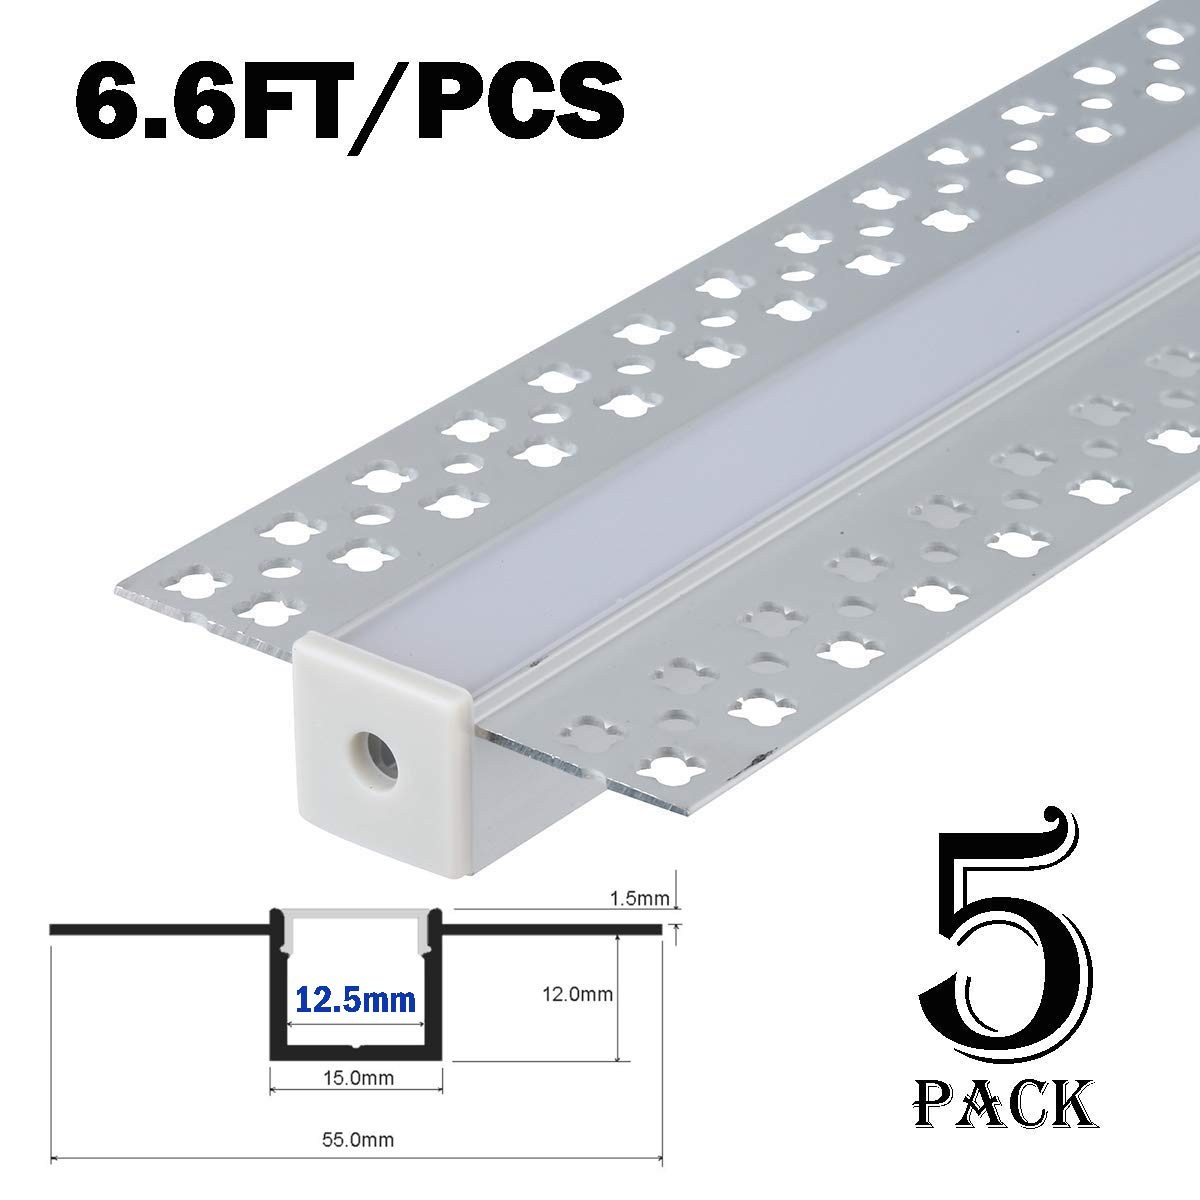 StarlandLed 5-Pack 6.6FT/2 Meter Plaster-in Recessed Slim LED Aluminum Channel with Flange for LED Strip, Aluminium LED Profile with Clip-in Diffuser and End Caps